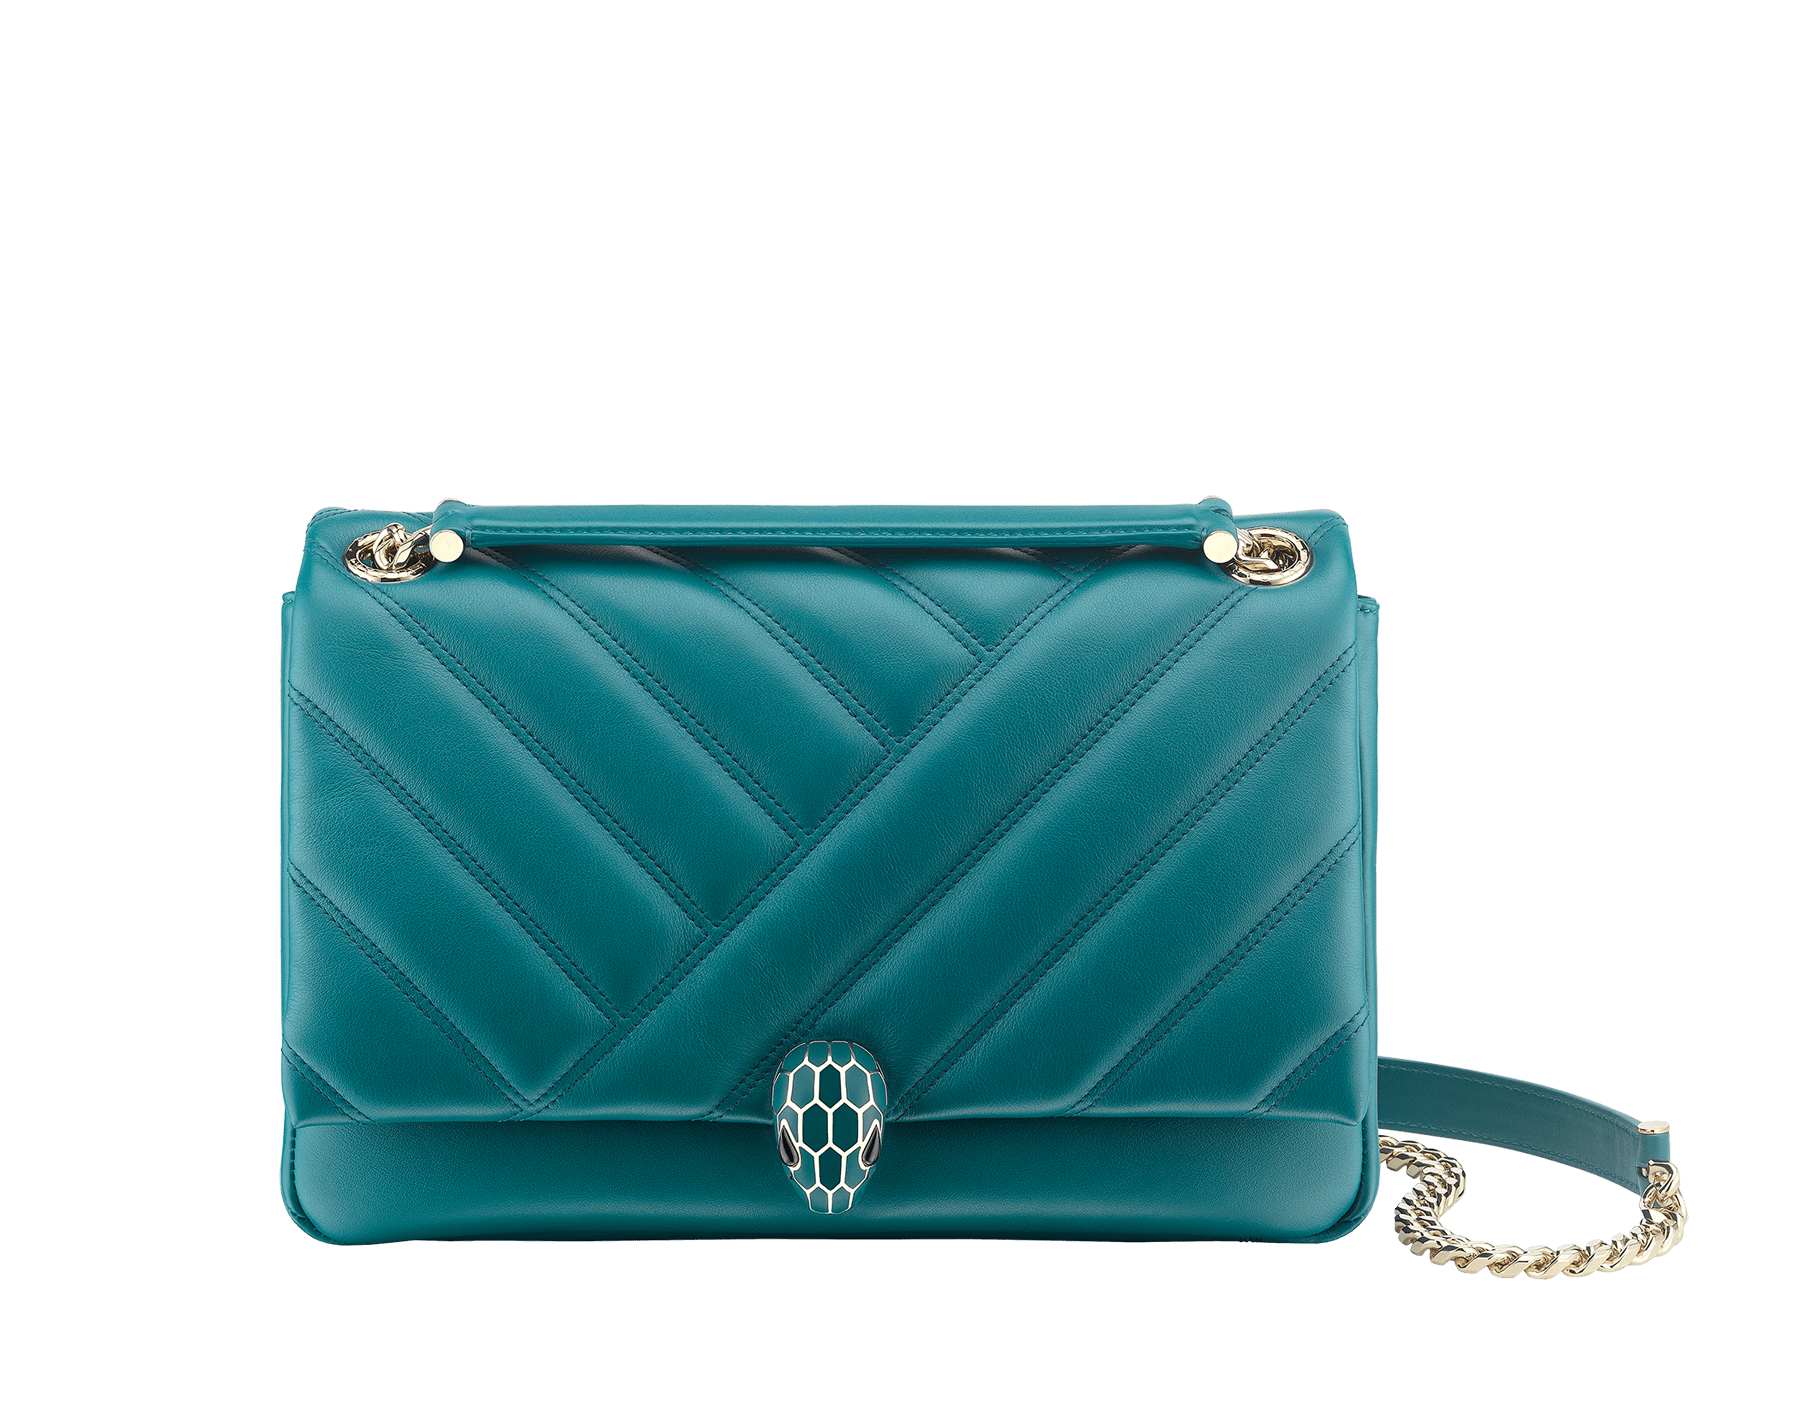 Serpenti Cabochon shoulder bag in soft matelassè deep jade nappa leather, with a graphic motif, and deep jade calf leather. Brass light gold plated tempting snake head closure in matte deep jade and shiny deep jade enamel, with black onyx eyes. 287984 image 1